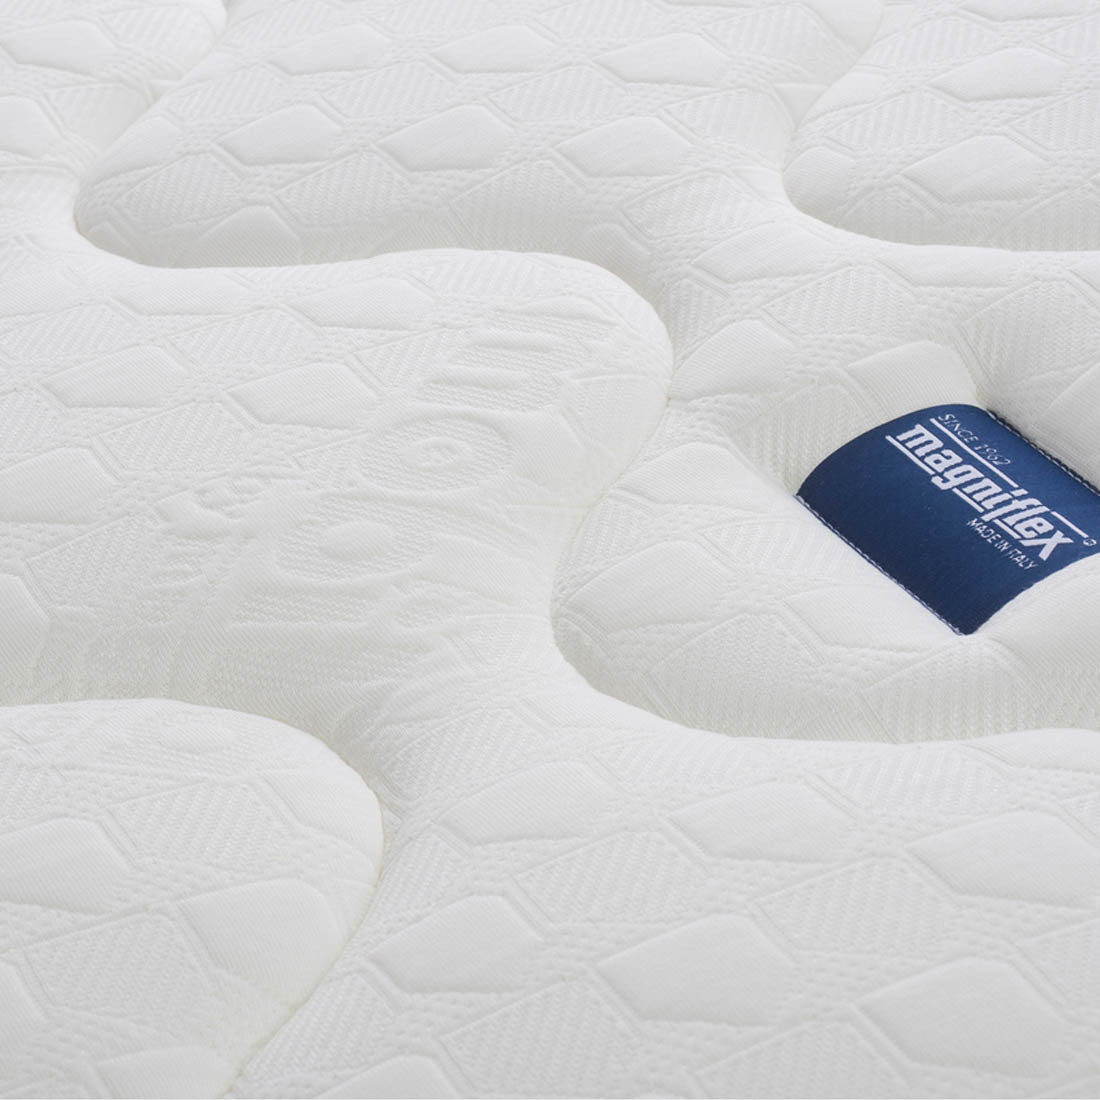 Memory foam from Magniflex